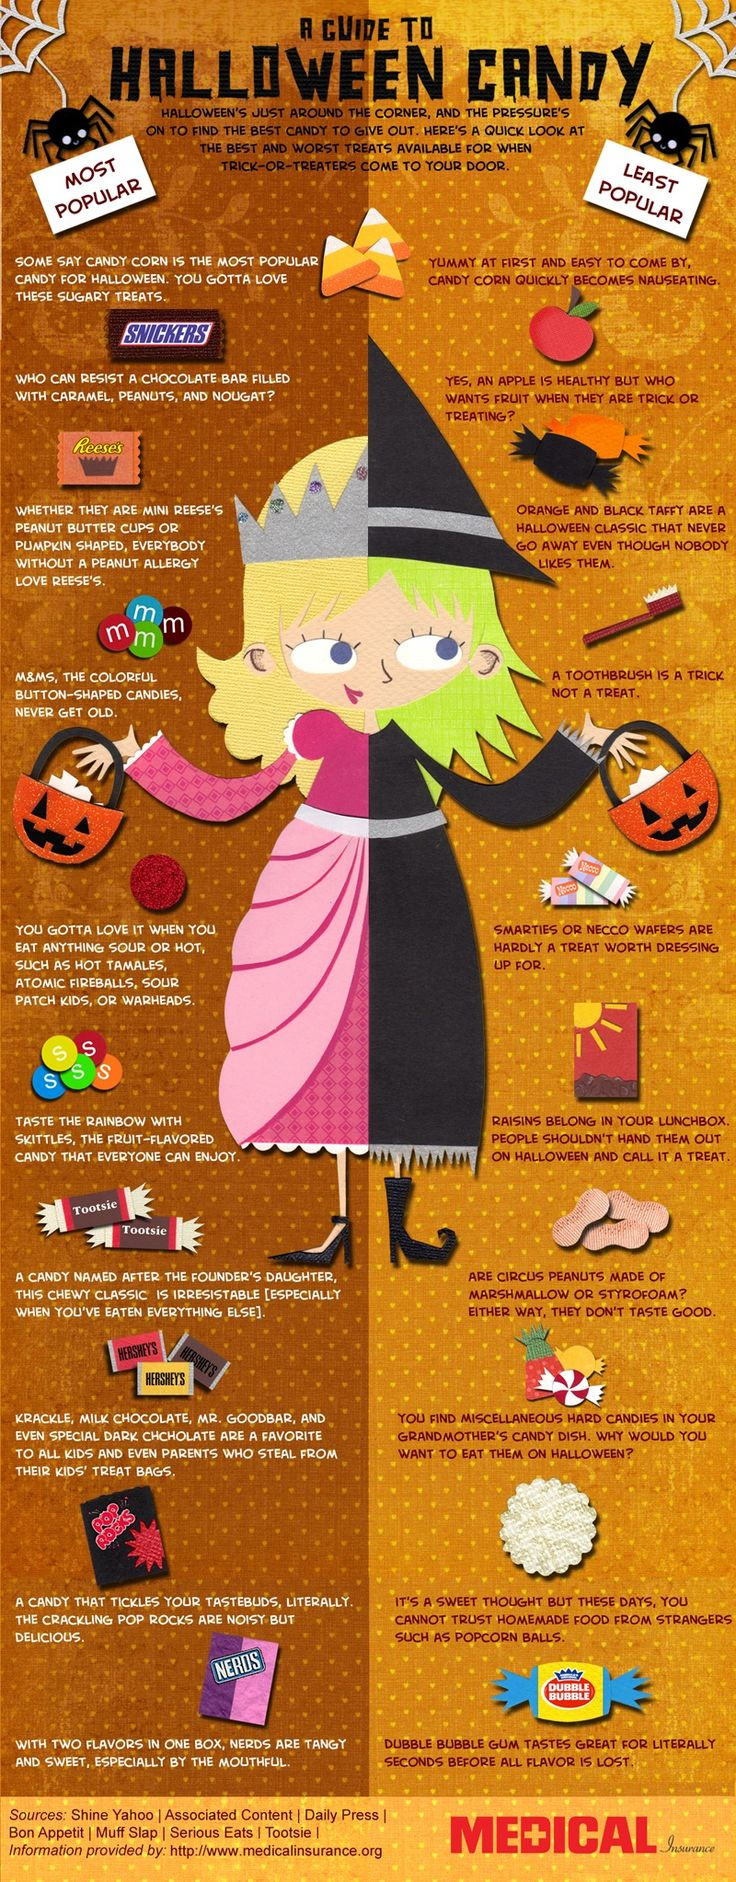 #Halloween candy guide: love that apples are the least popular